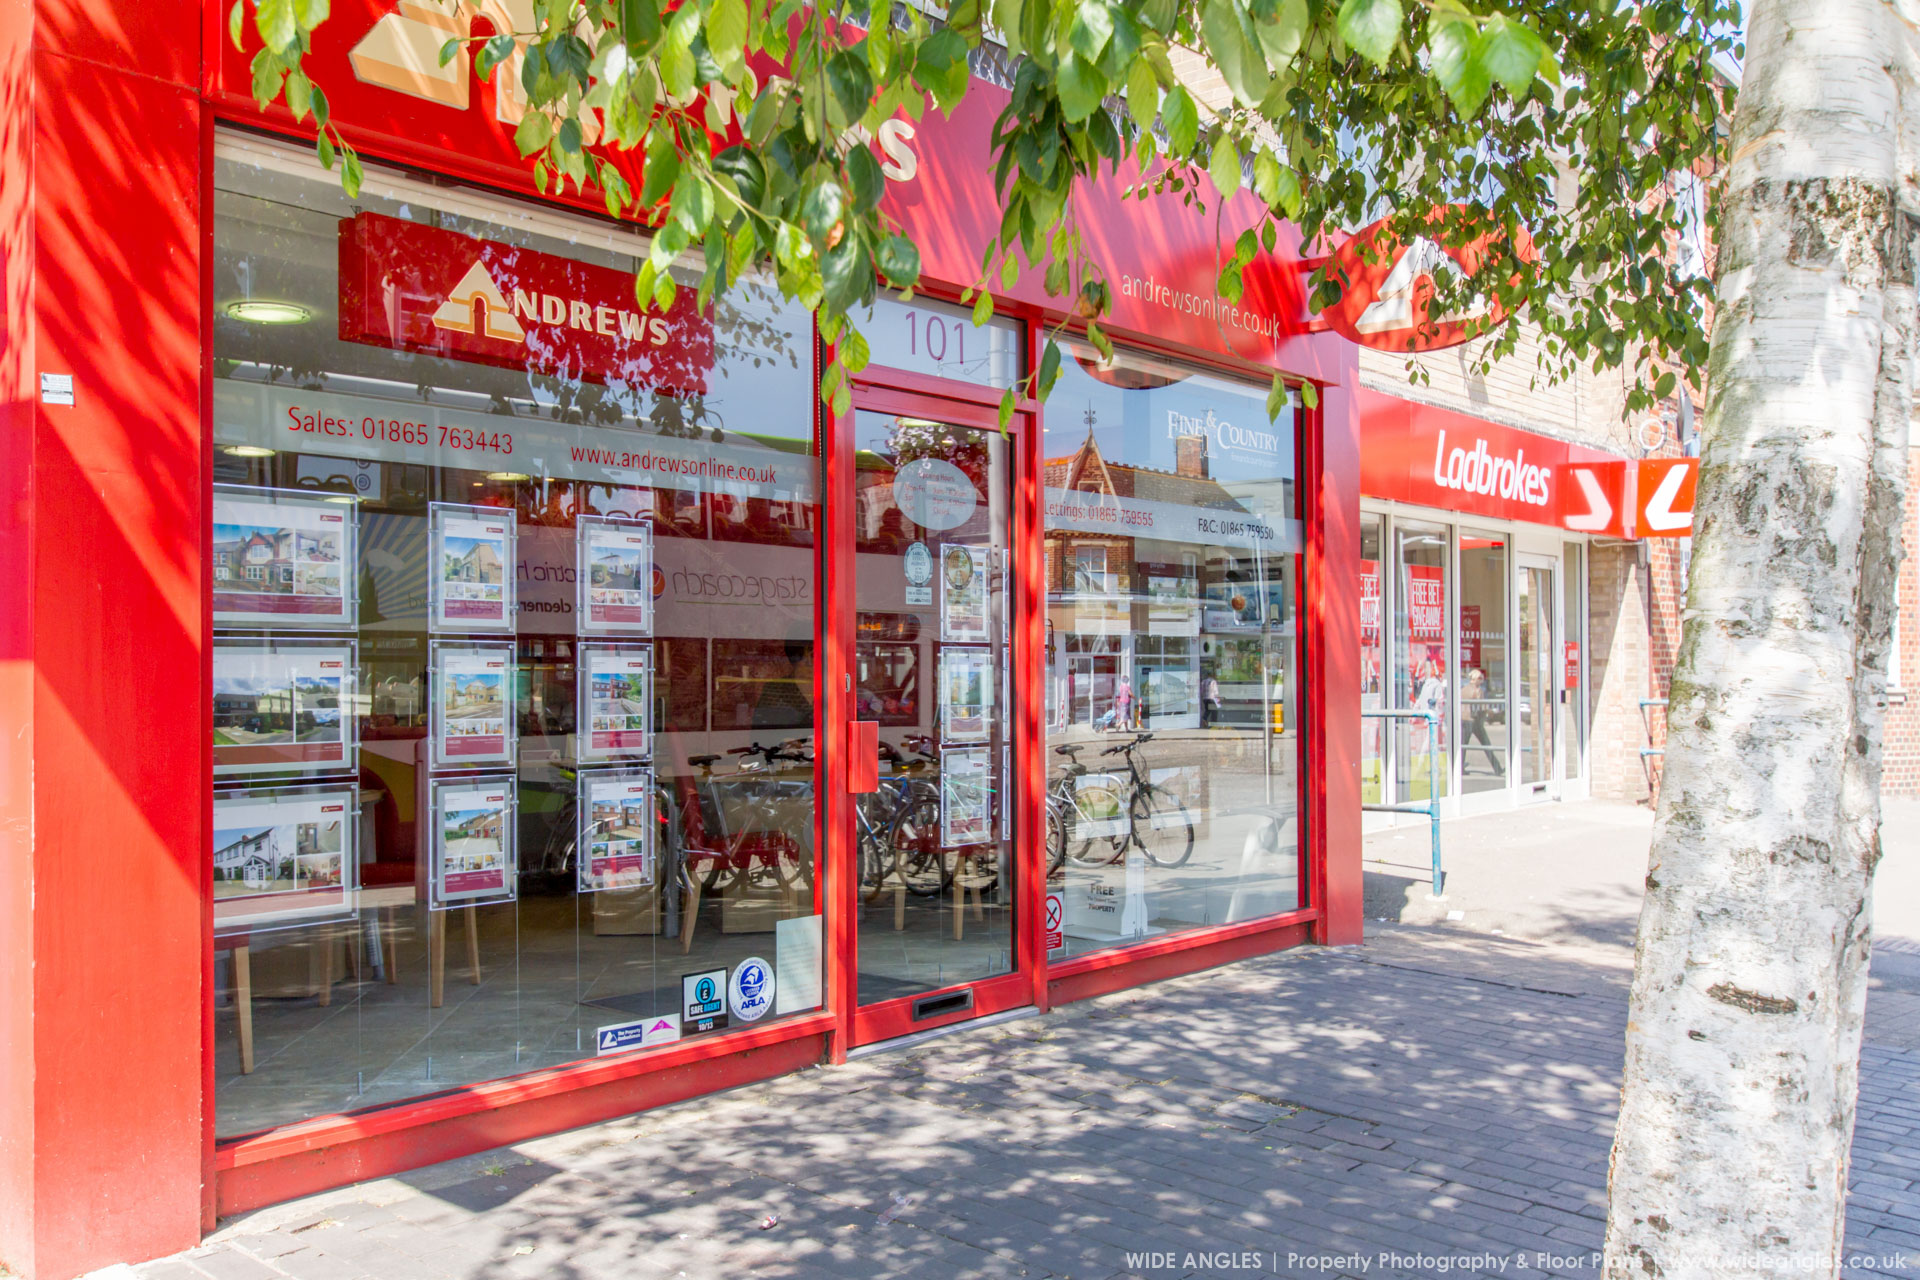 Wide Angles Property Marketing Services - Branch Services